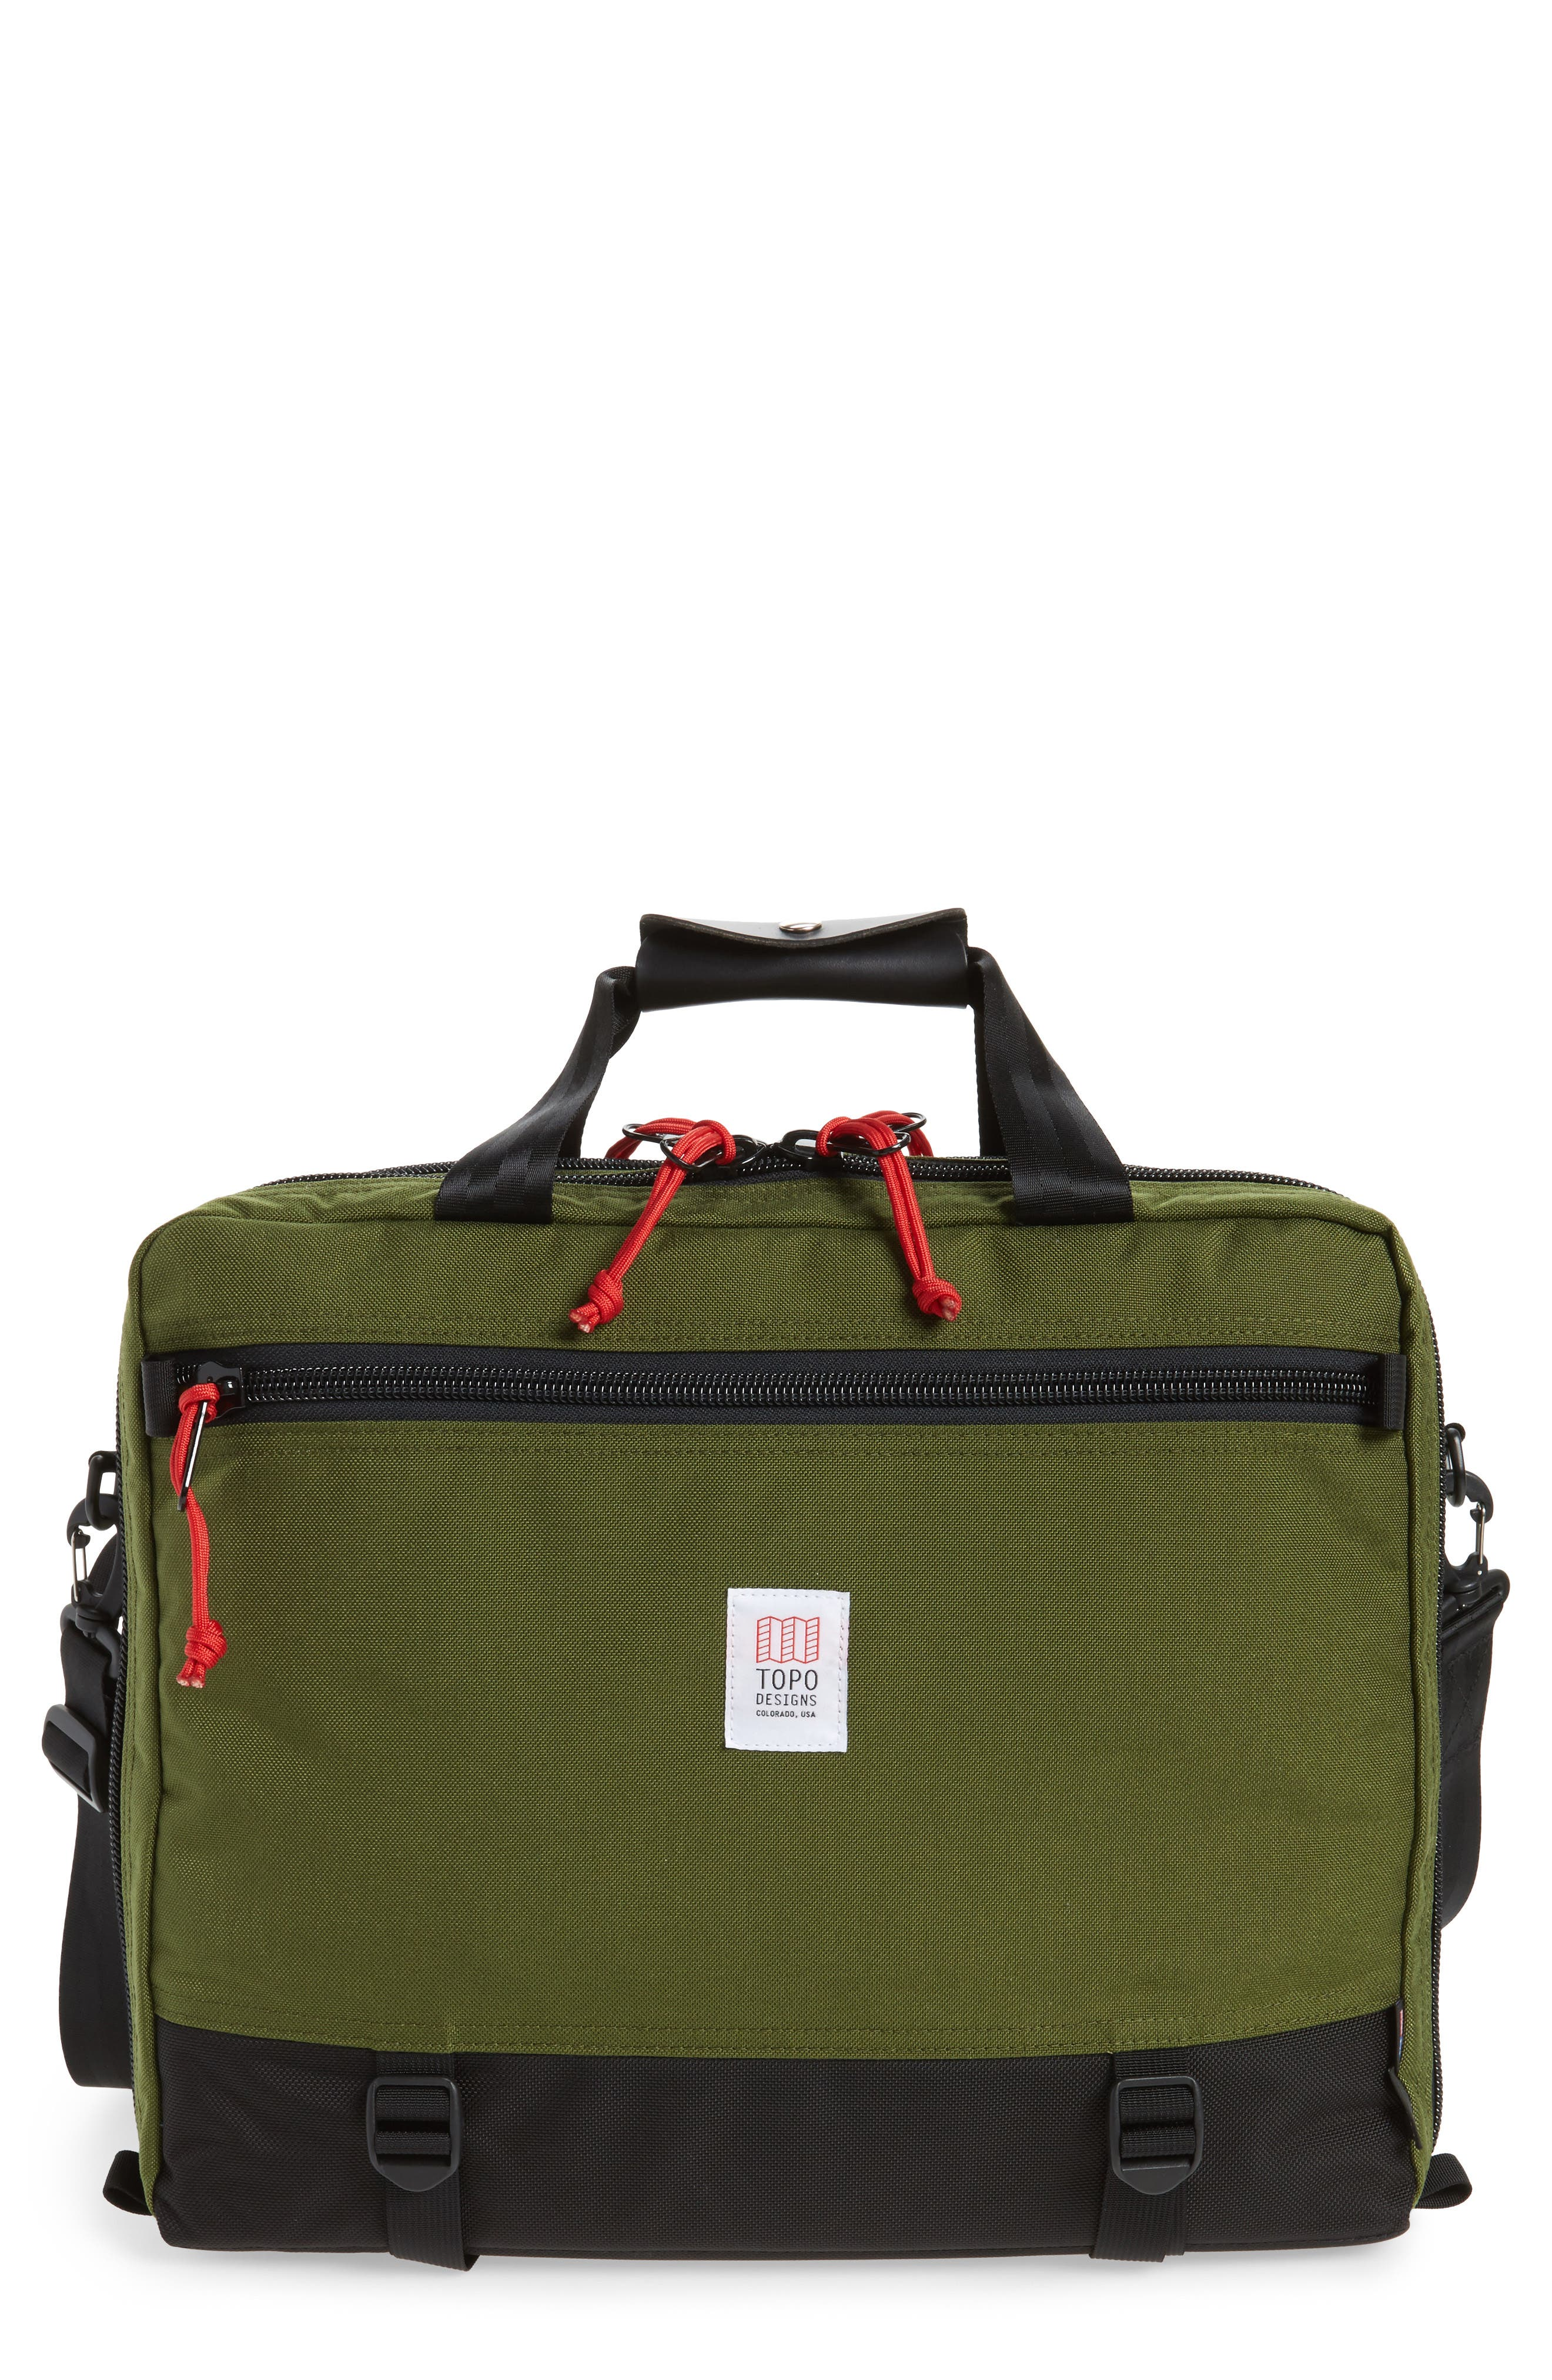 3-Day Briefcase,                         Main,                         color, Olive/ Ballistic Black